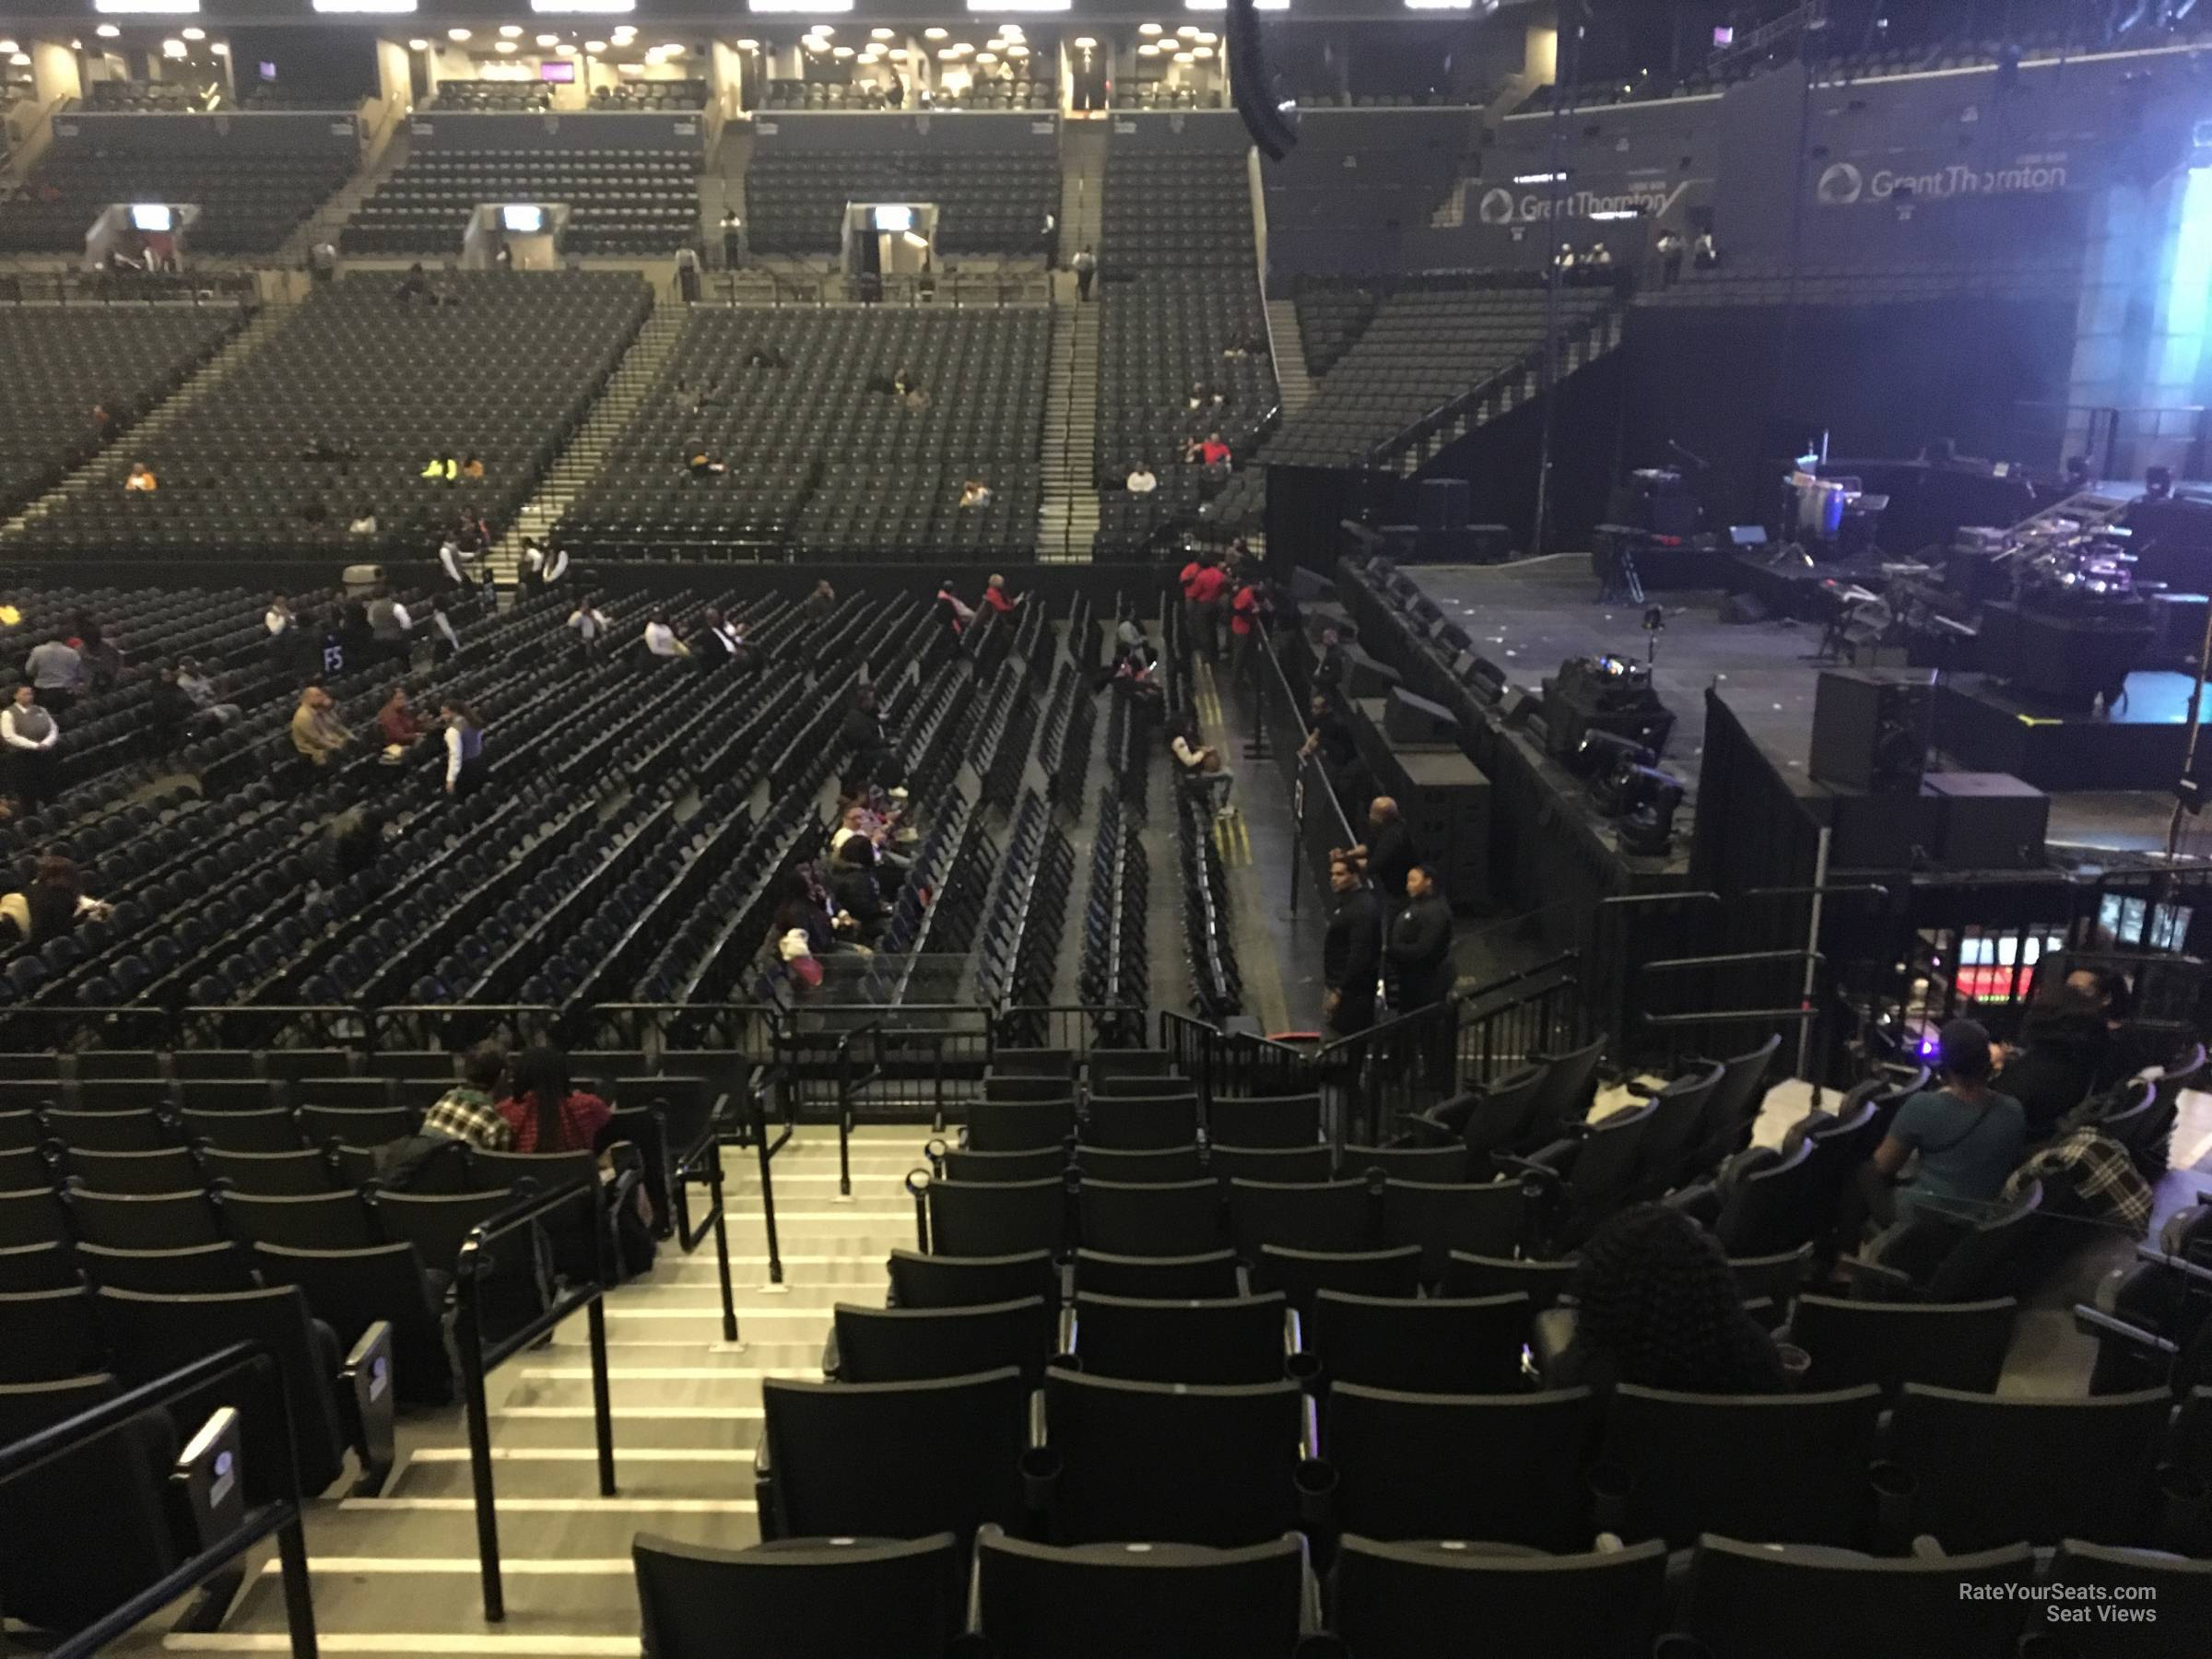 Barclays Center Section 6 Concert Seating Rateyourseatscom